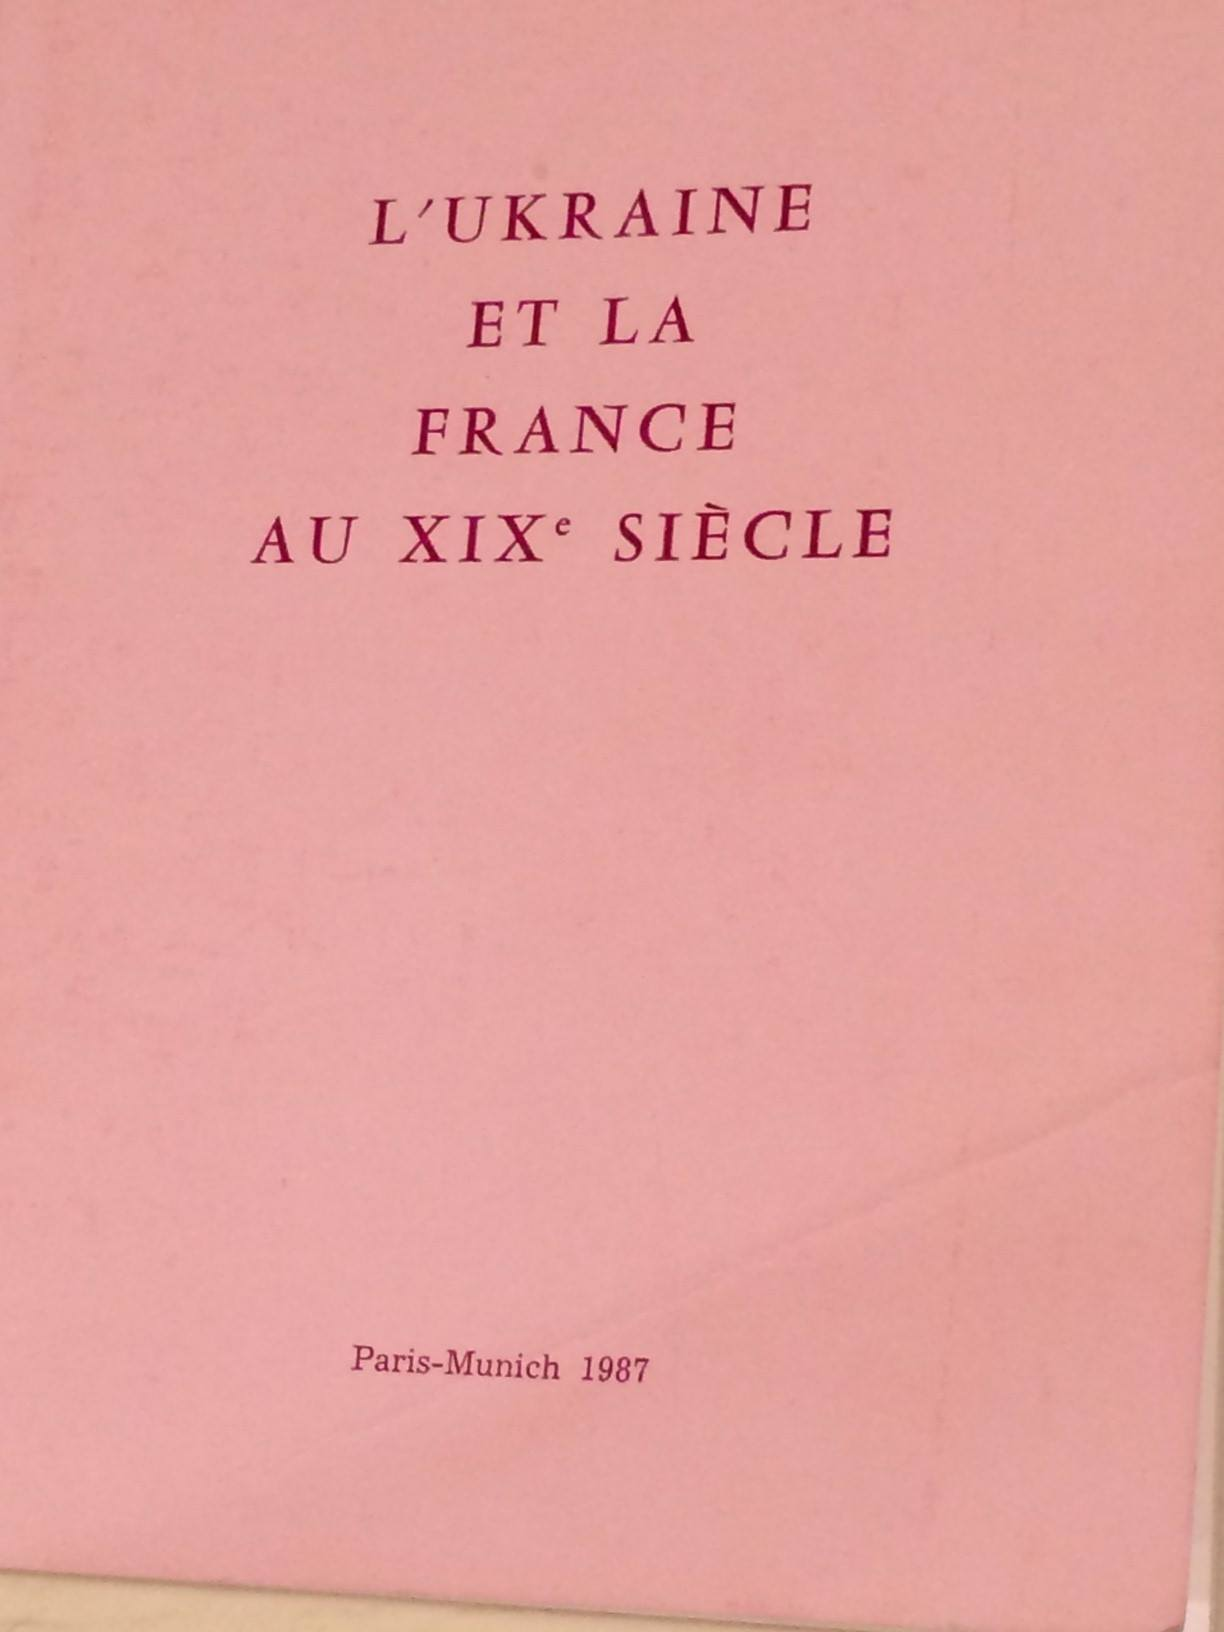 L'UKRAINE ET LA FRANCE AU XIX SIECLE